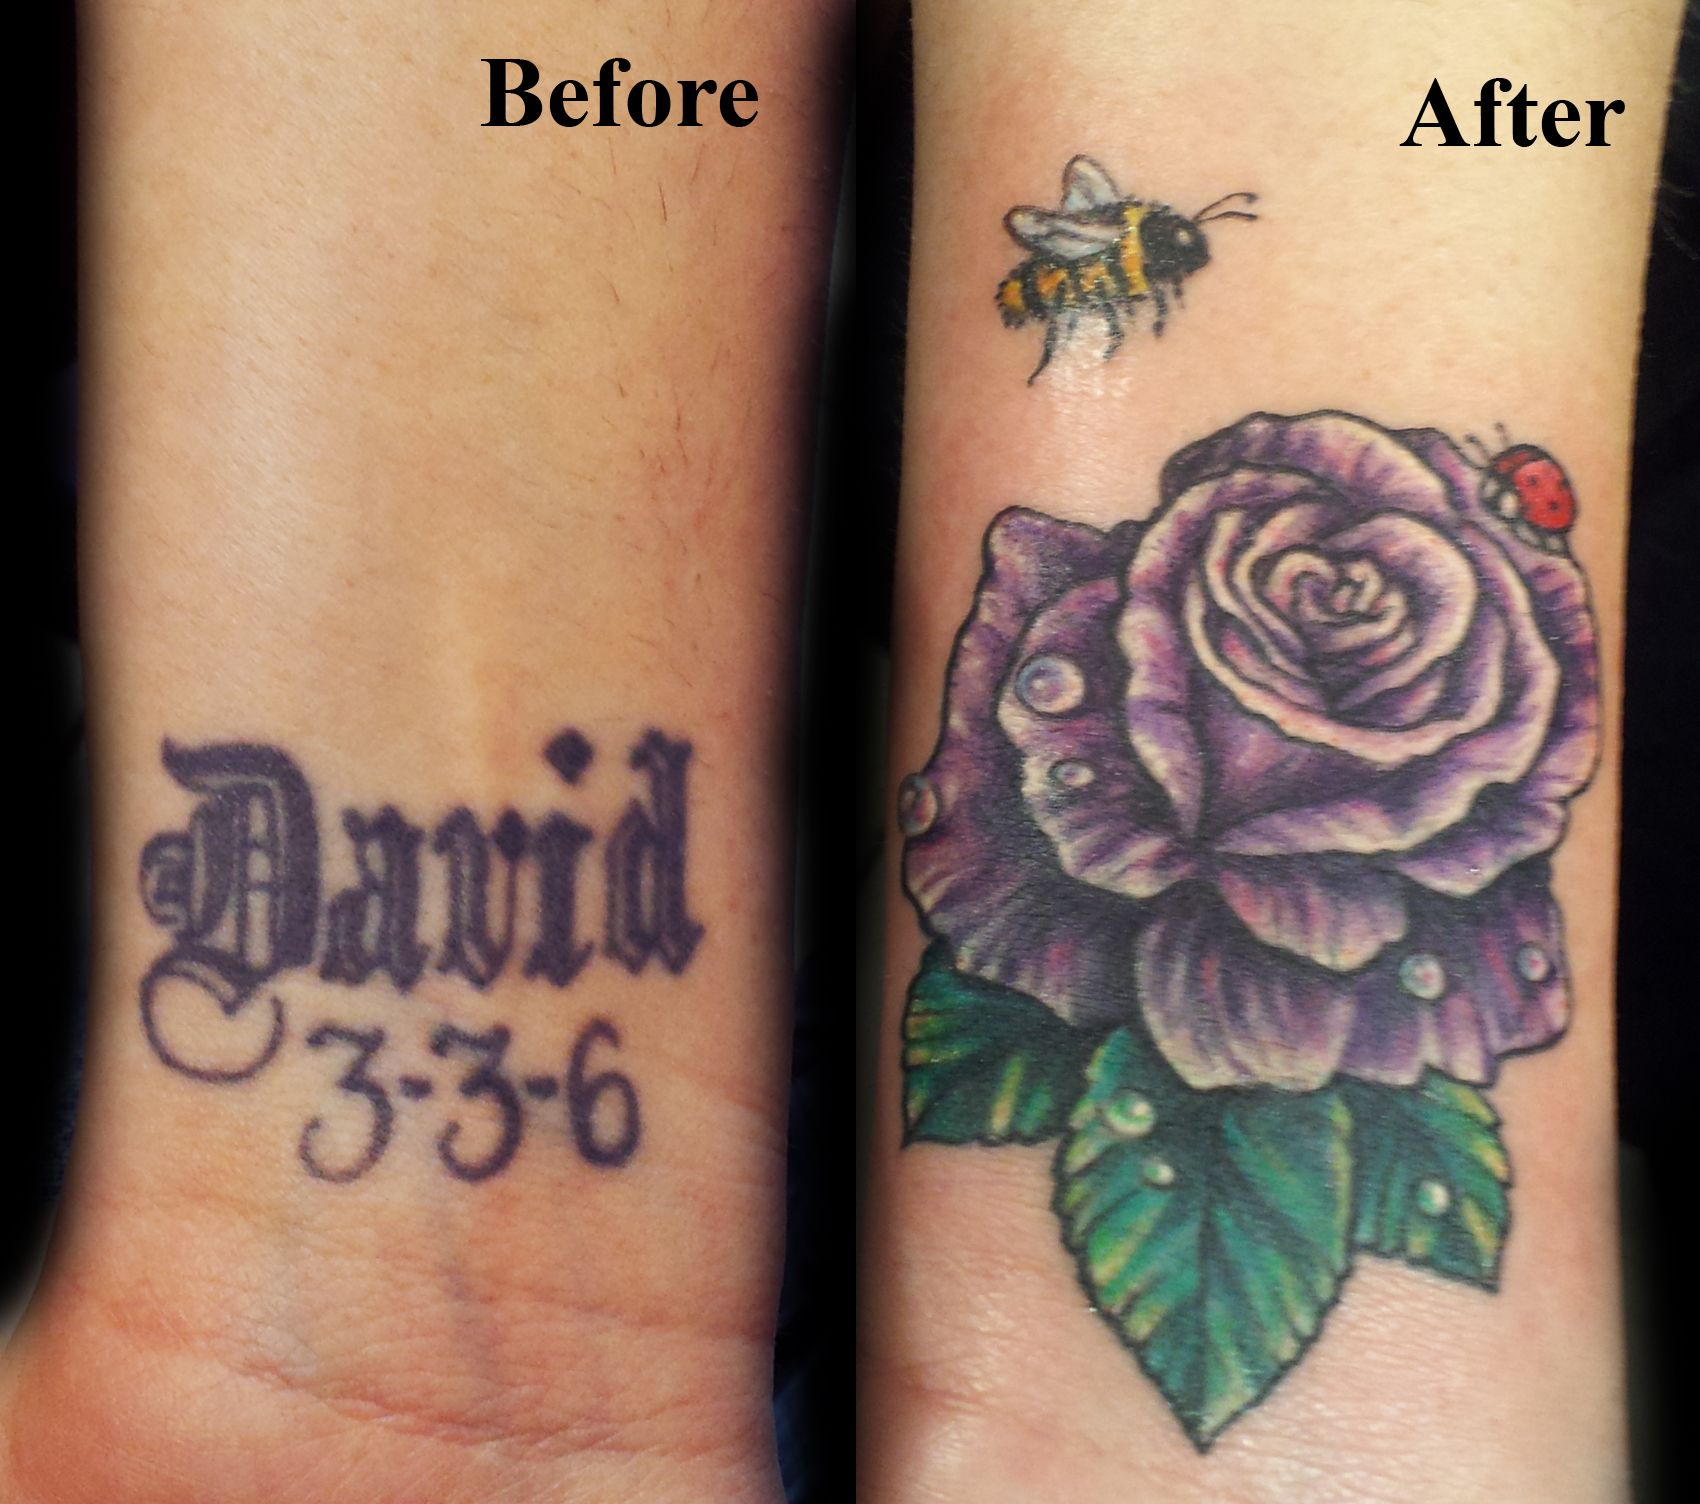 Wrist Coverup Cover Up Tattoos Cover Up Name Tattoos Cover Up